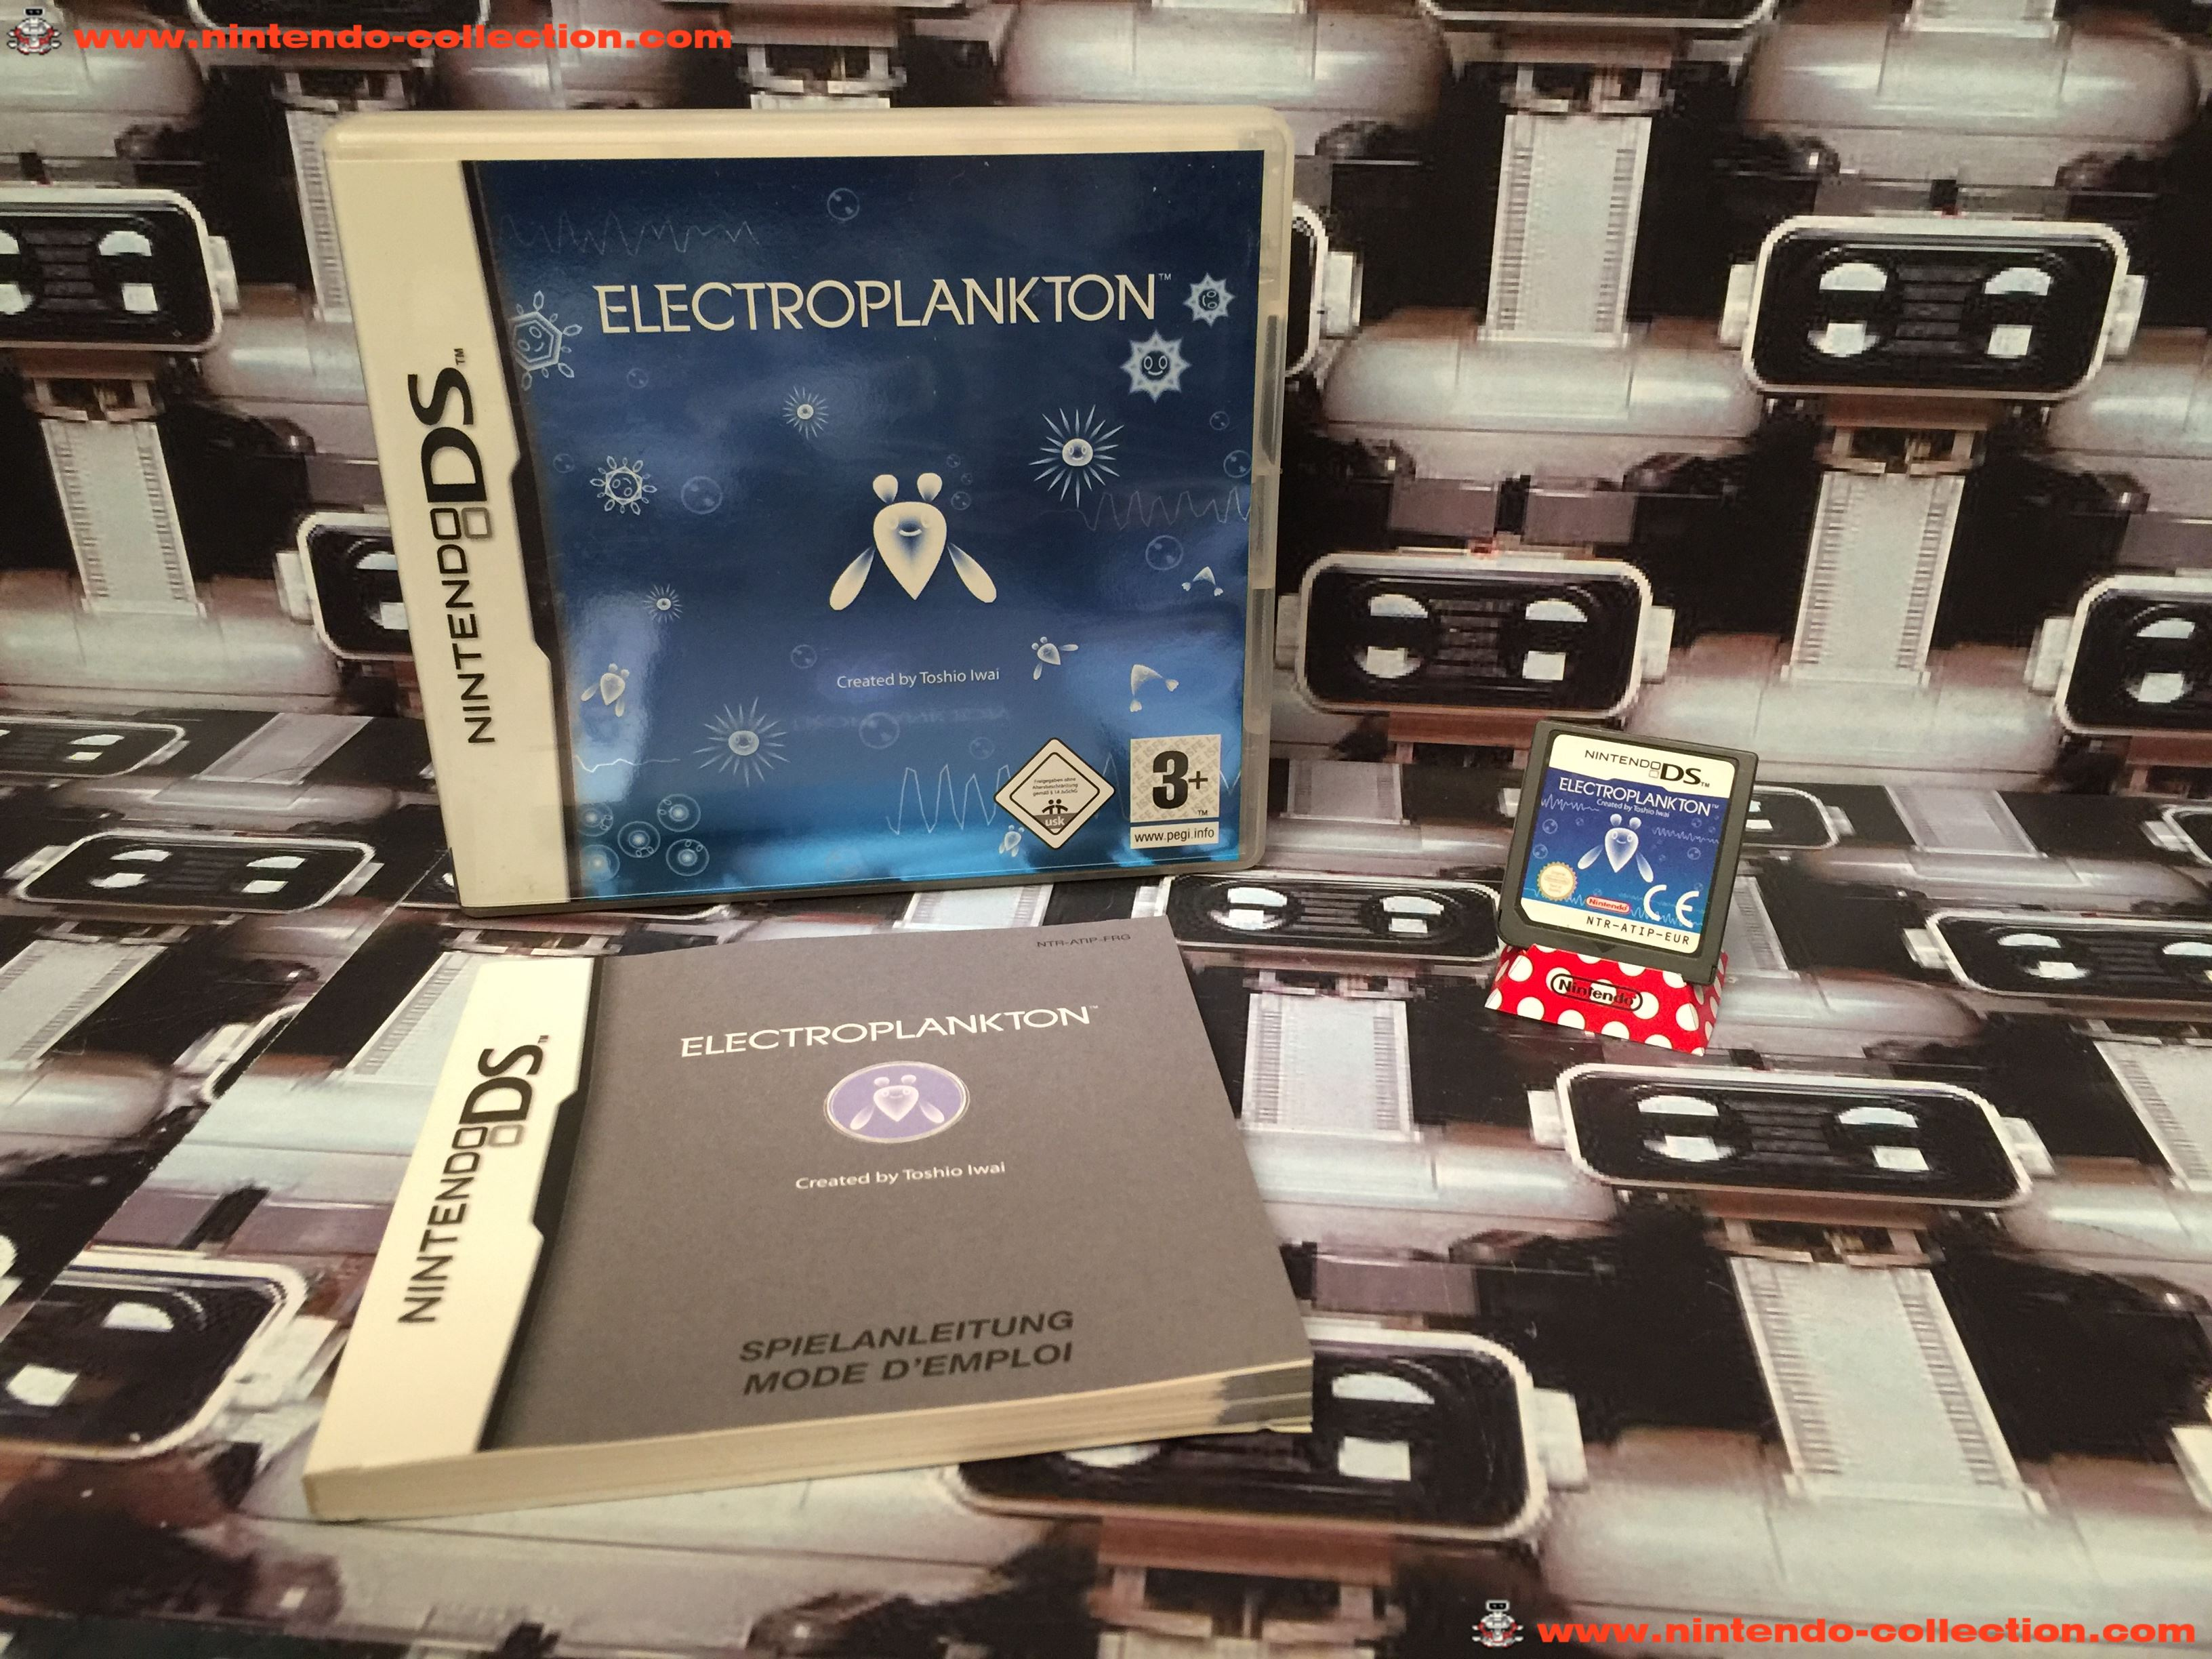 www.nintendo-collection.com - Nintendo DS Jeux Game Electroplankton Euro